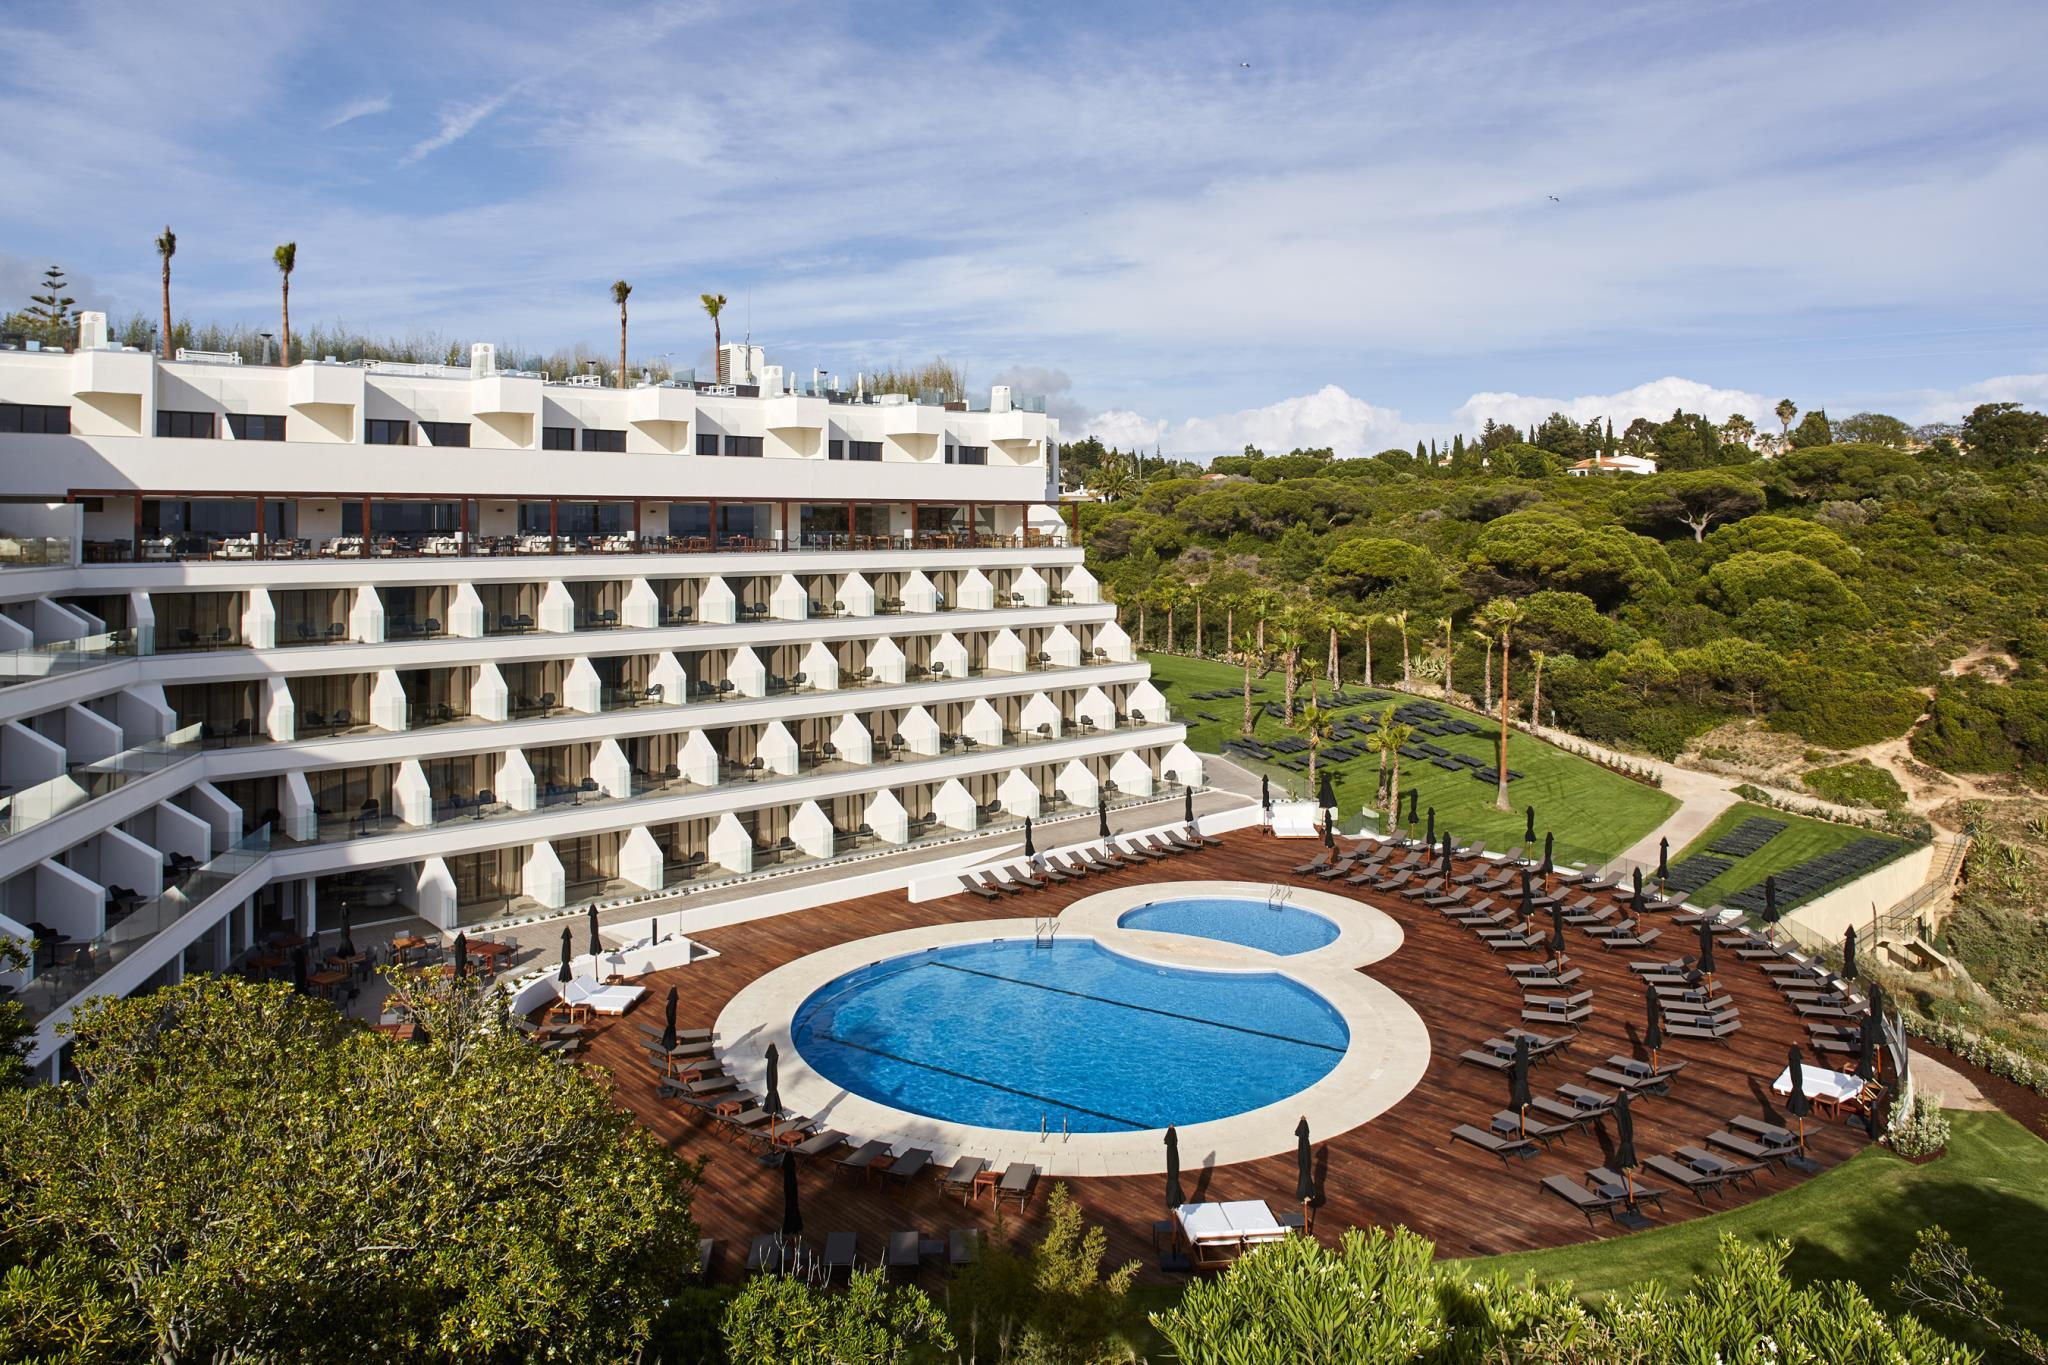 Hotel Tivoli Carvoeiro Algarve Booking Tivoli Carvoeiro Hotel In Portugal Room Deals Photos Reviews